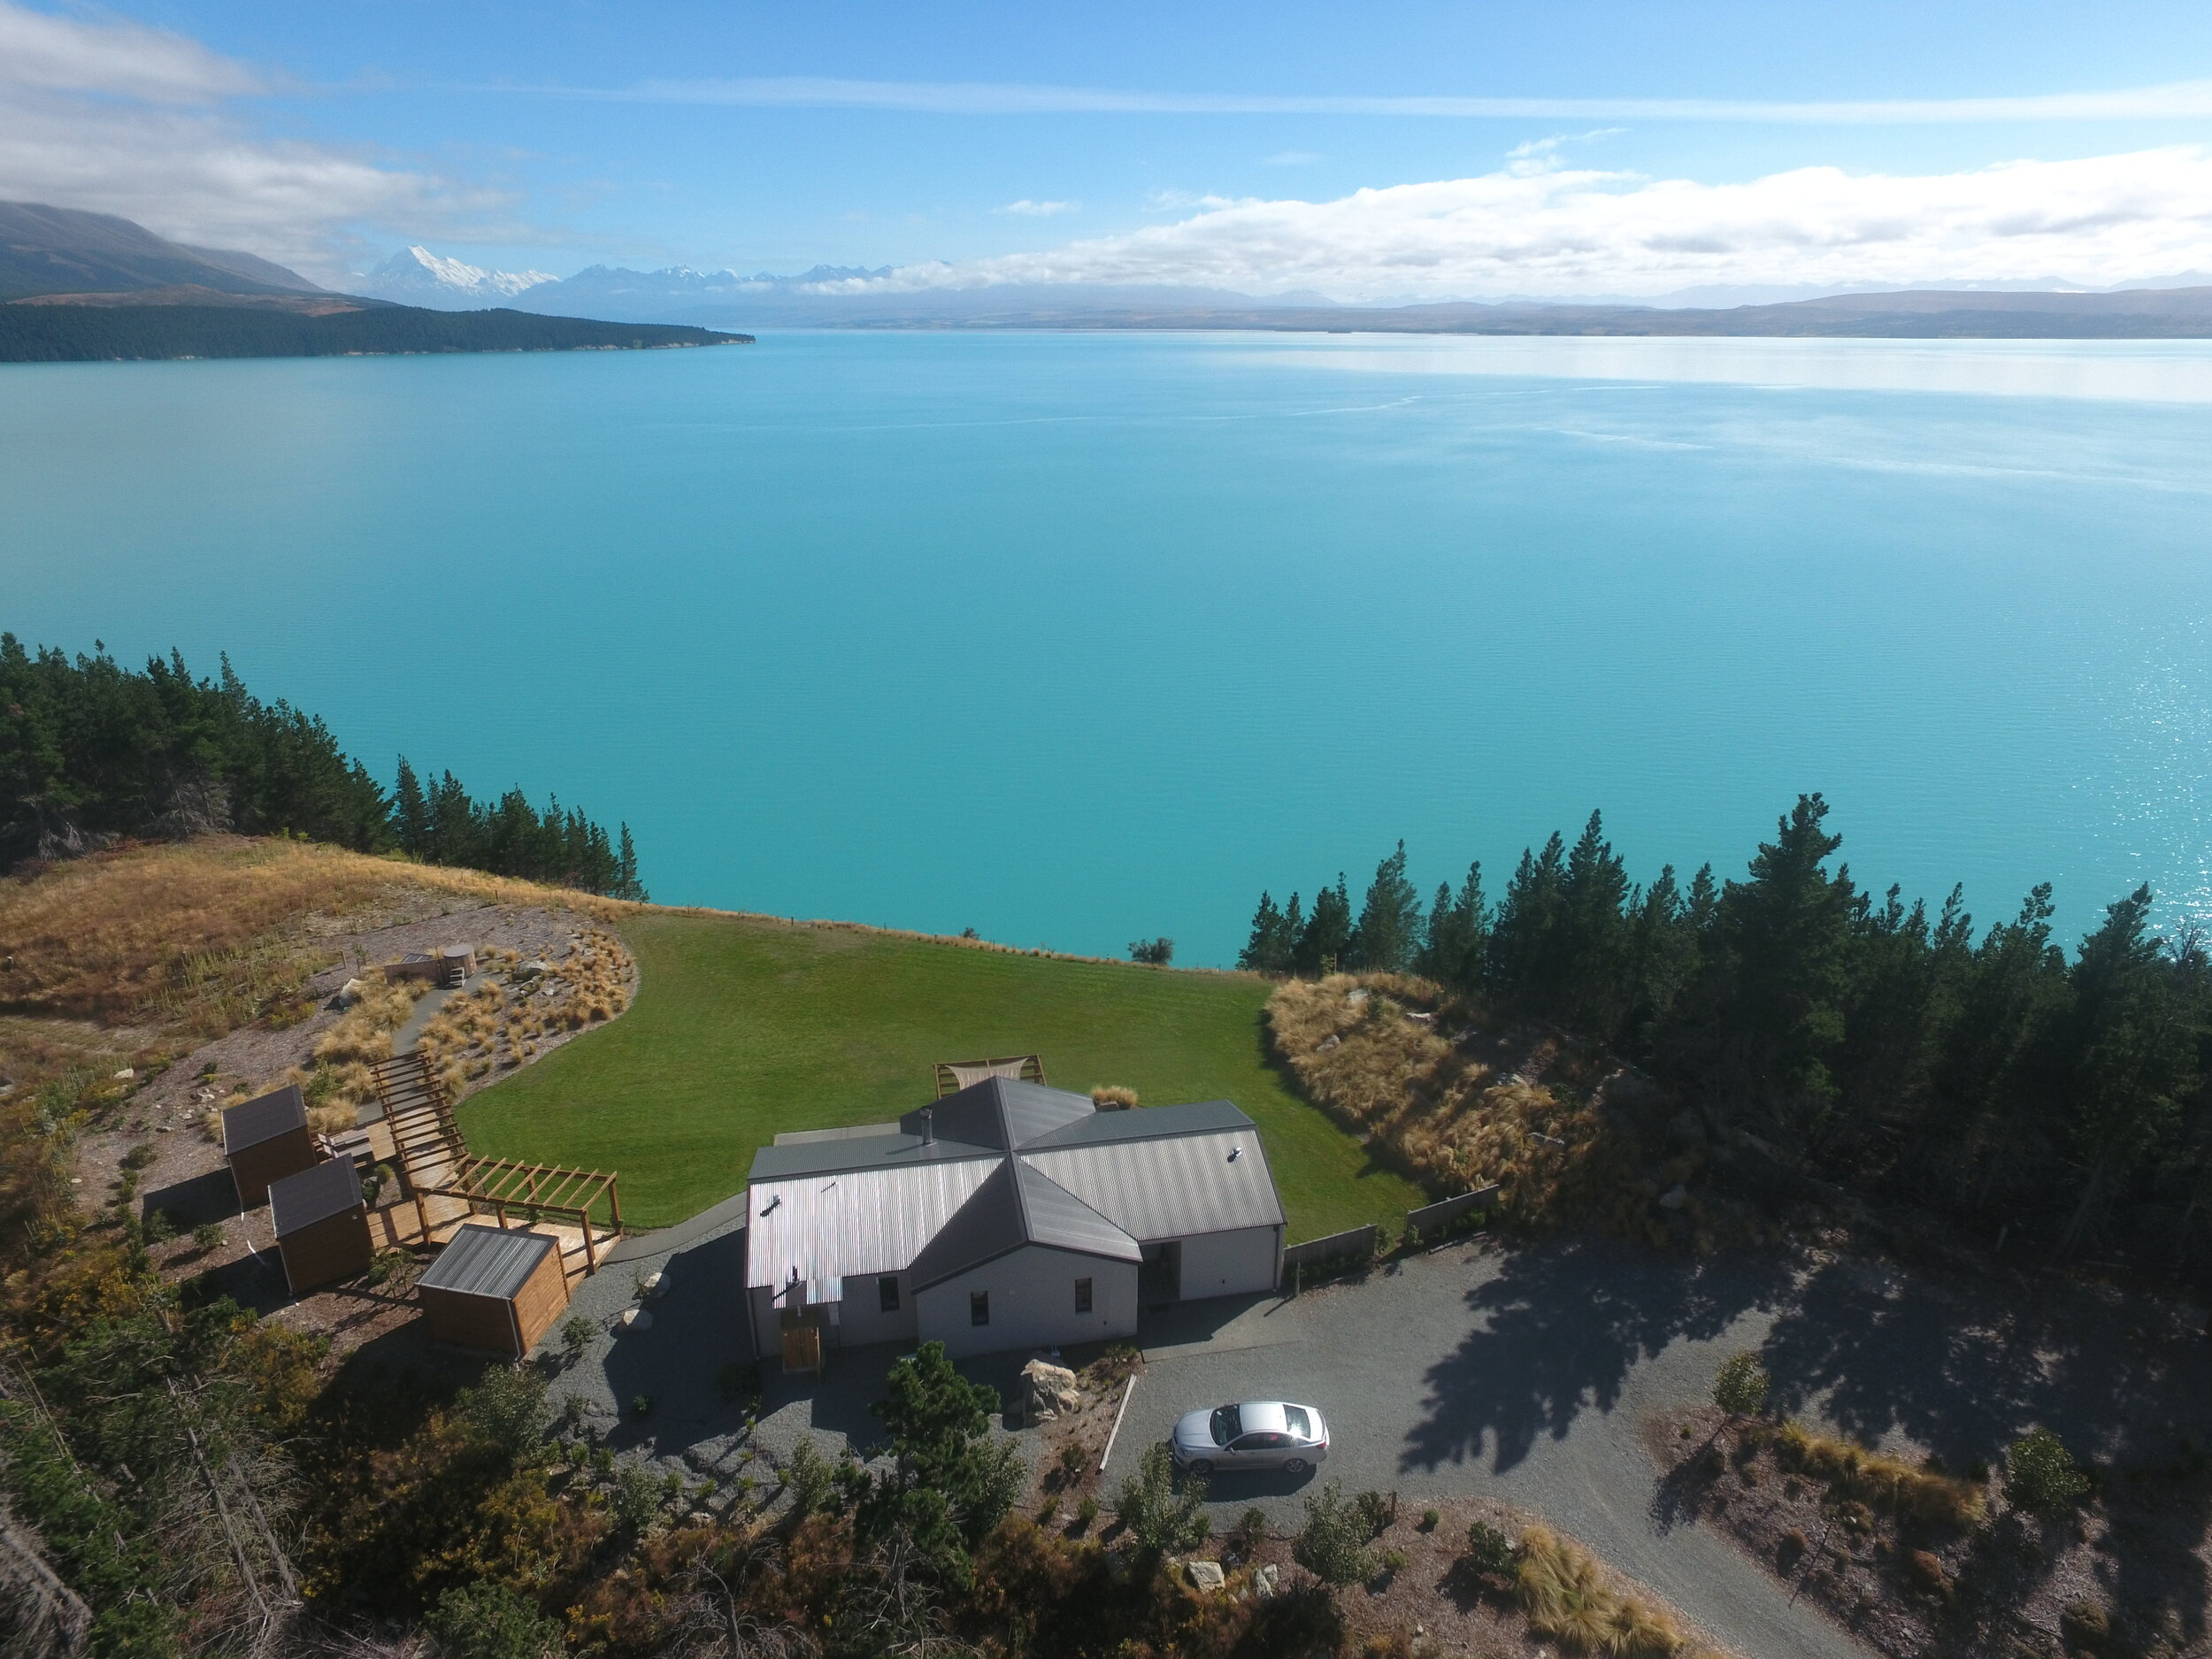 Mabey Ski_New Zealand_Mt Cook Lakeside Retreat_Aerial View.jpg